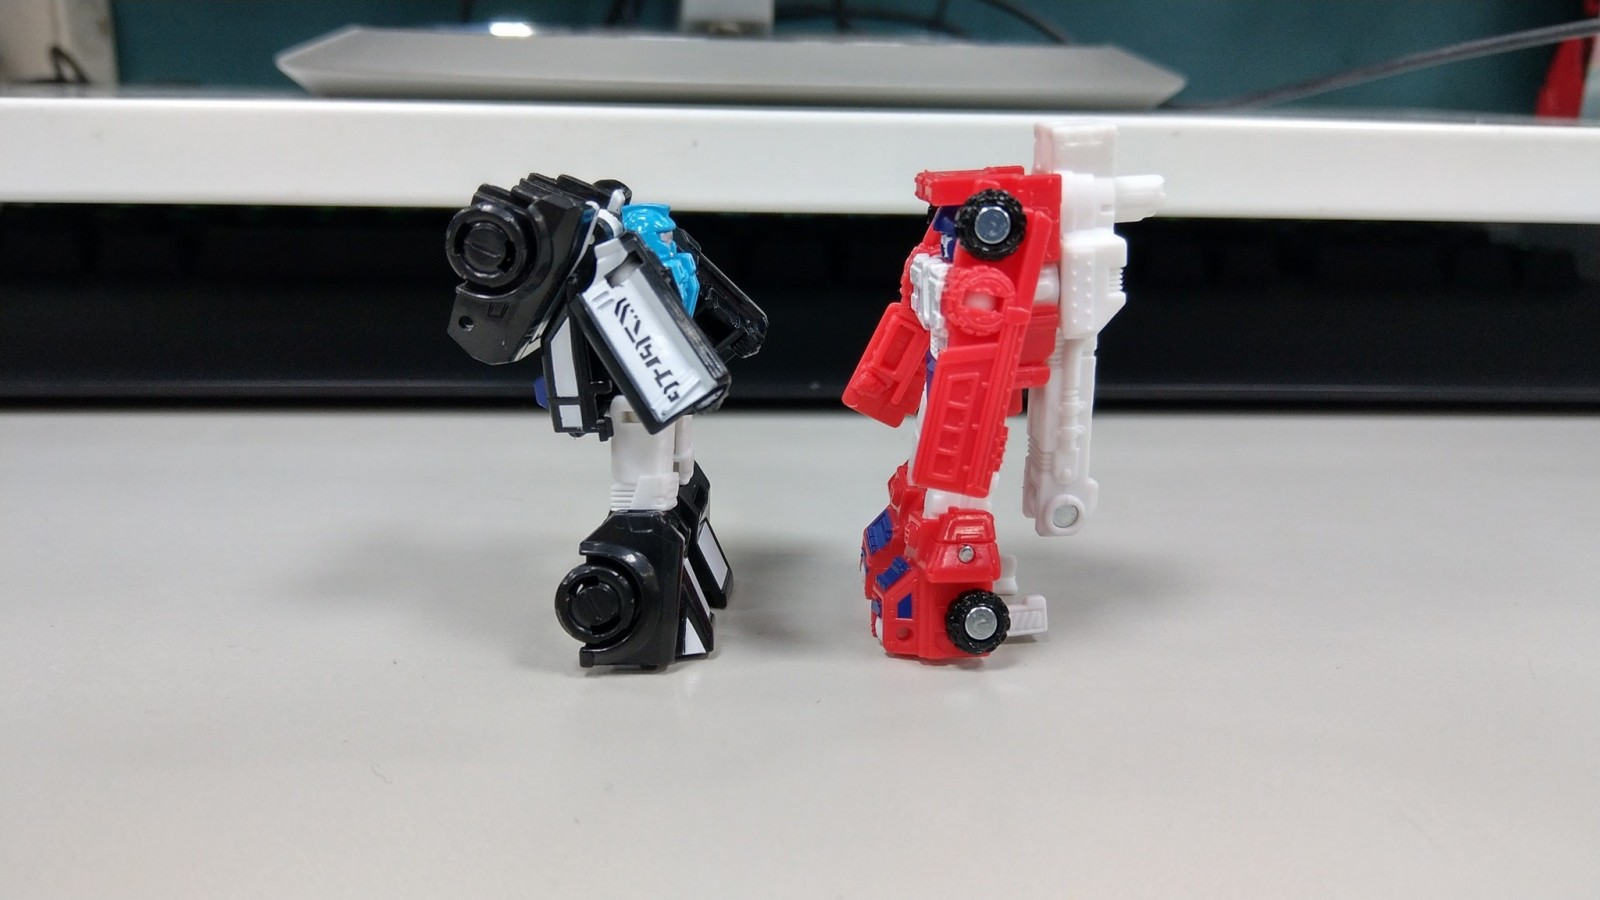 Transformers News: In Hand Images of Transformers Siege Wave 2 Micromasters